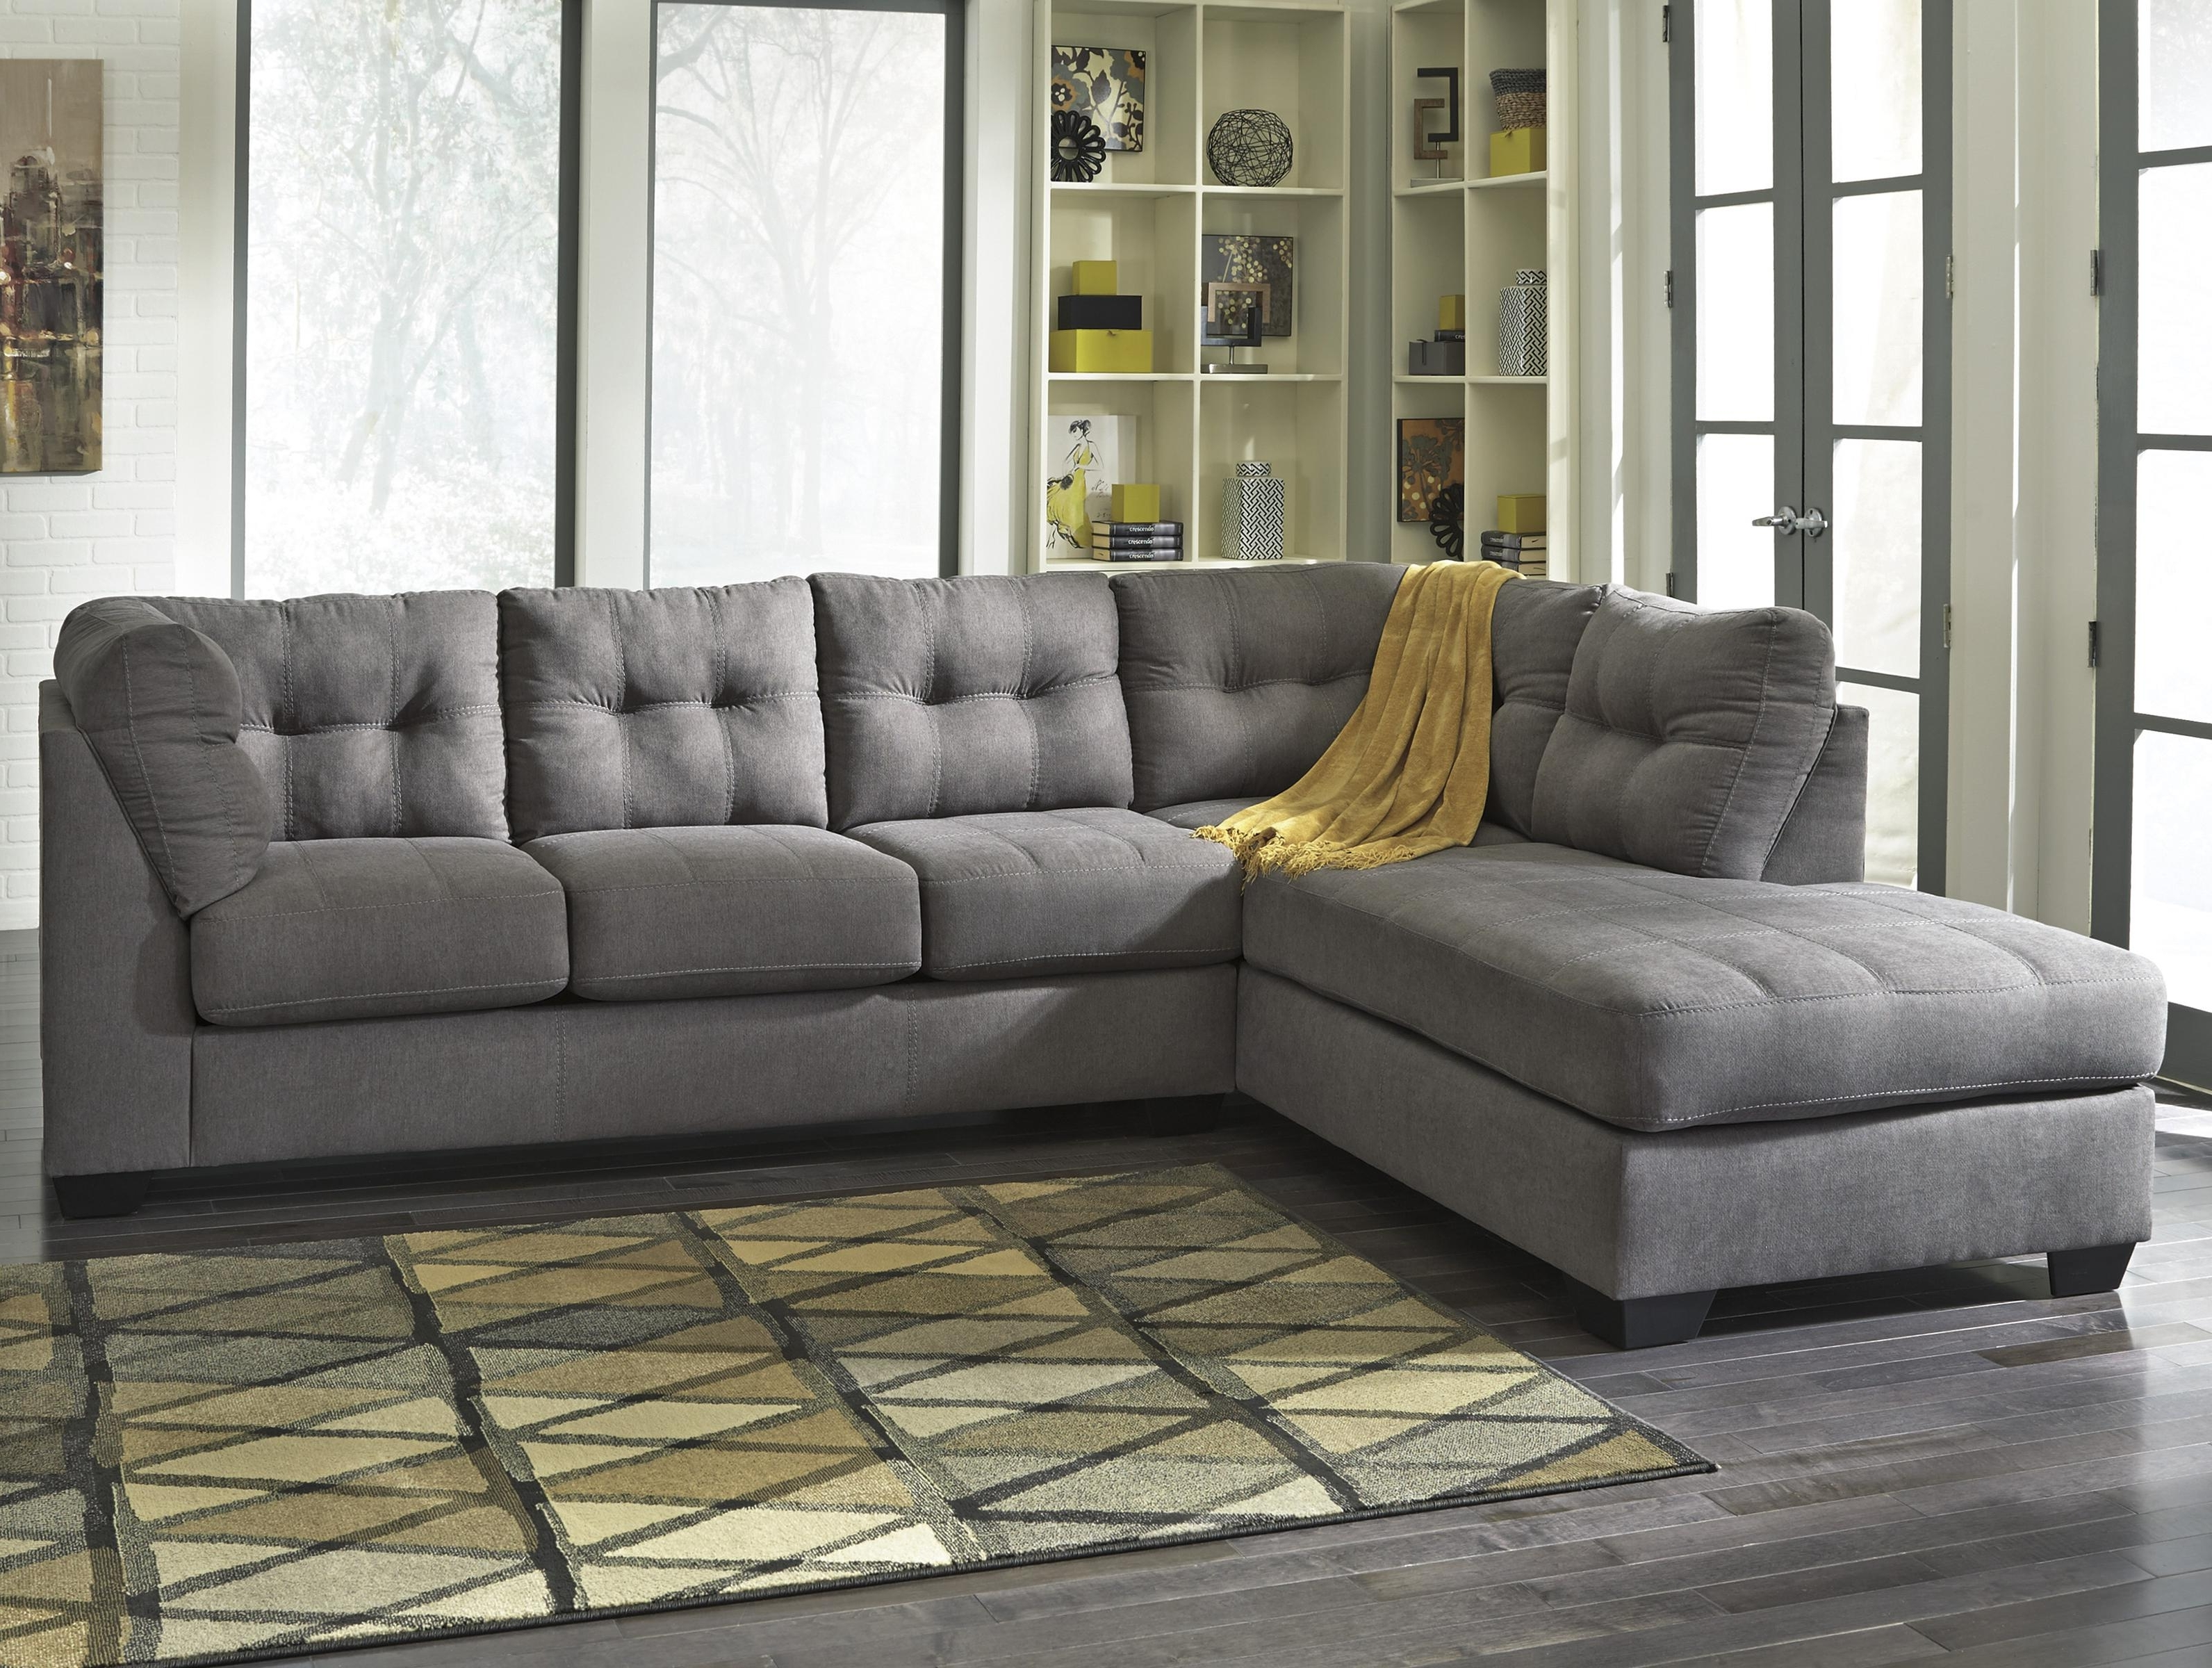 Benchcraftashley Maier – Charcoal 2 Piece Sectional With Left For Preferred Memphis Sectional Sofas (View 9 of 15)